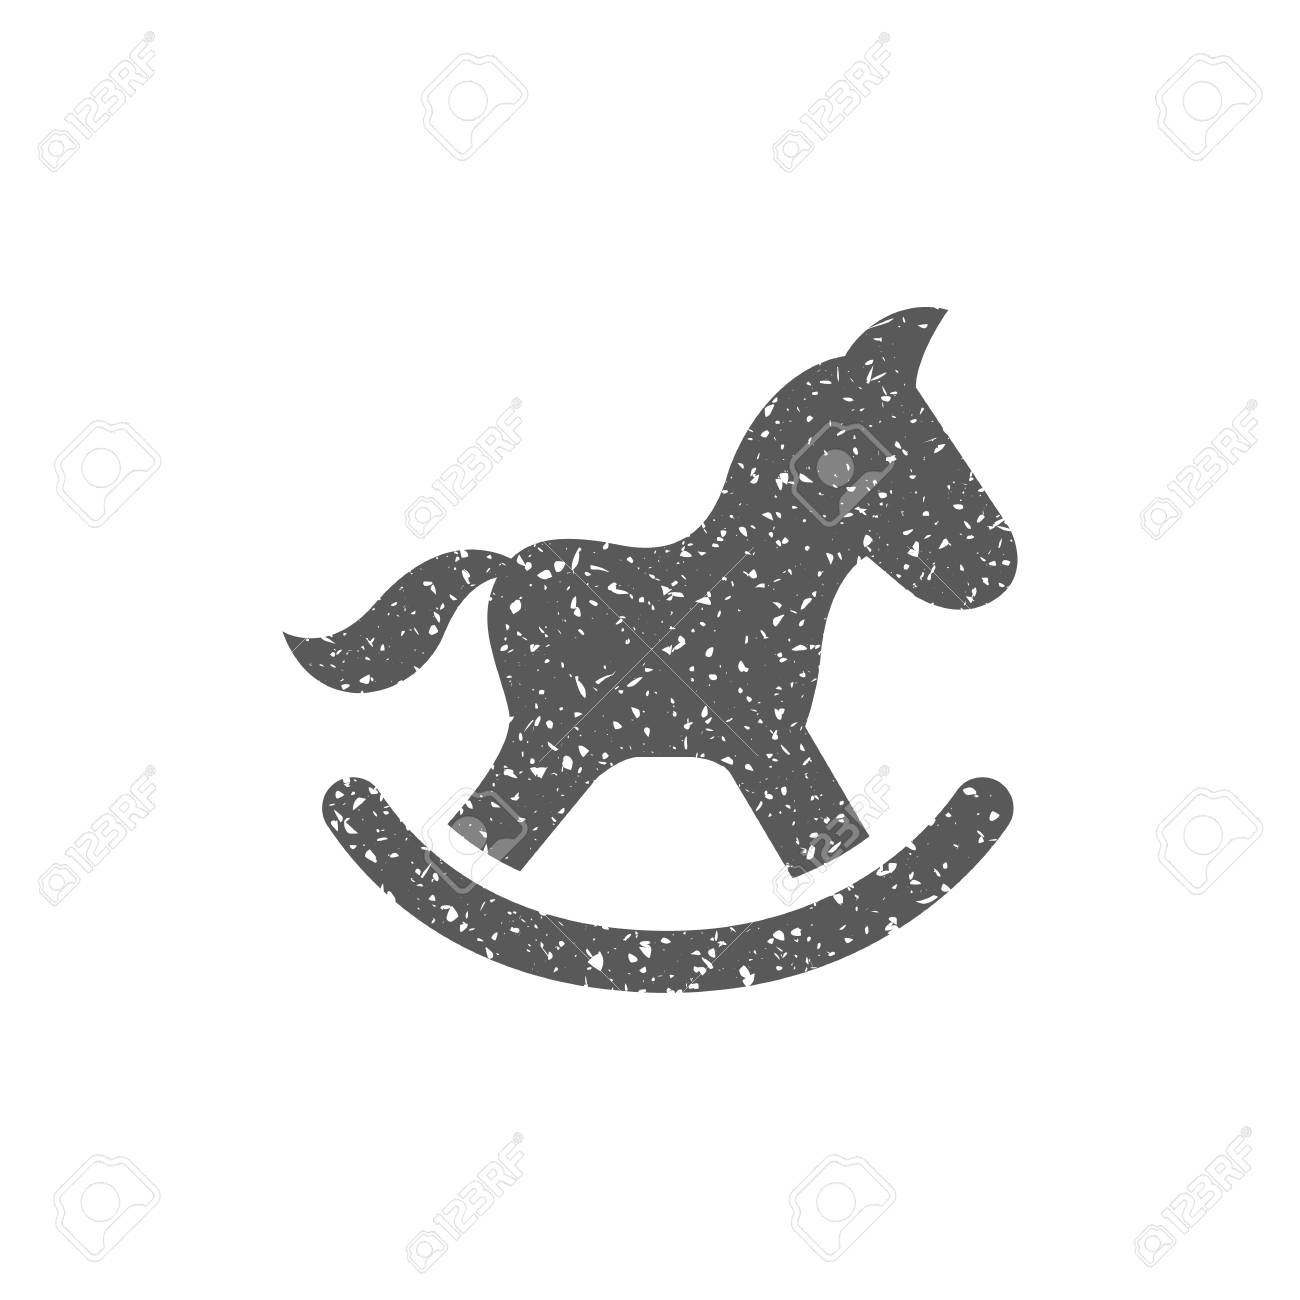 Rocking Horse Toy Icon In Grunge Texture Vintage Style Vector Royalty Free Cliparts Vectors And Stock Illustration Image 112378218